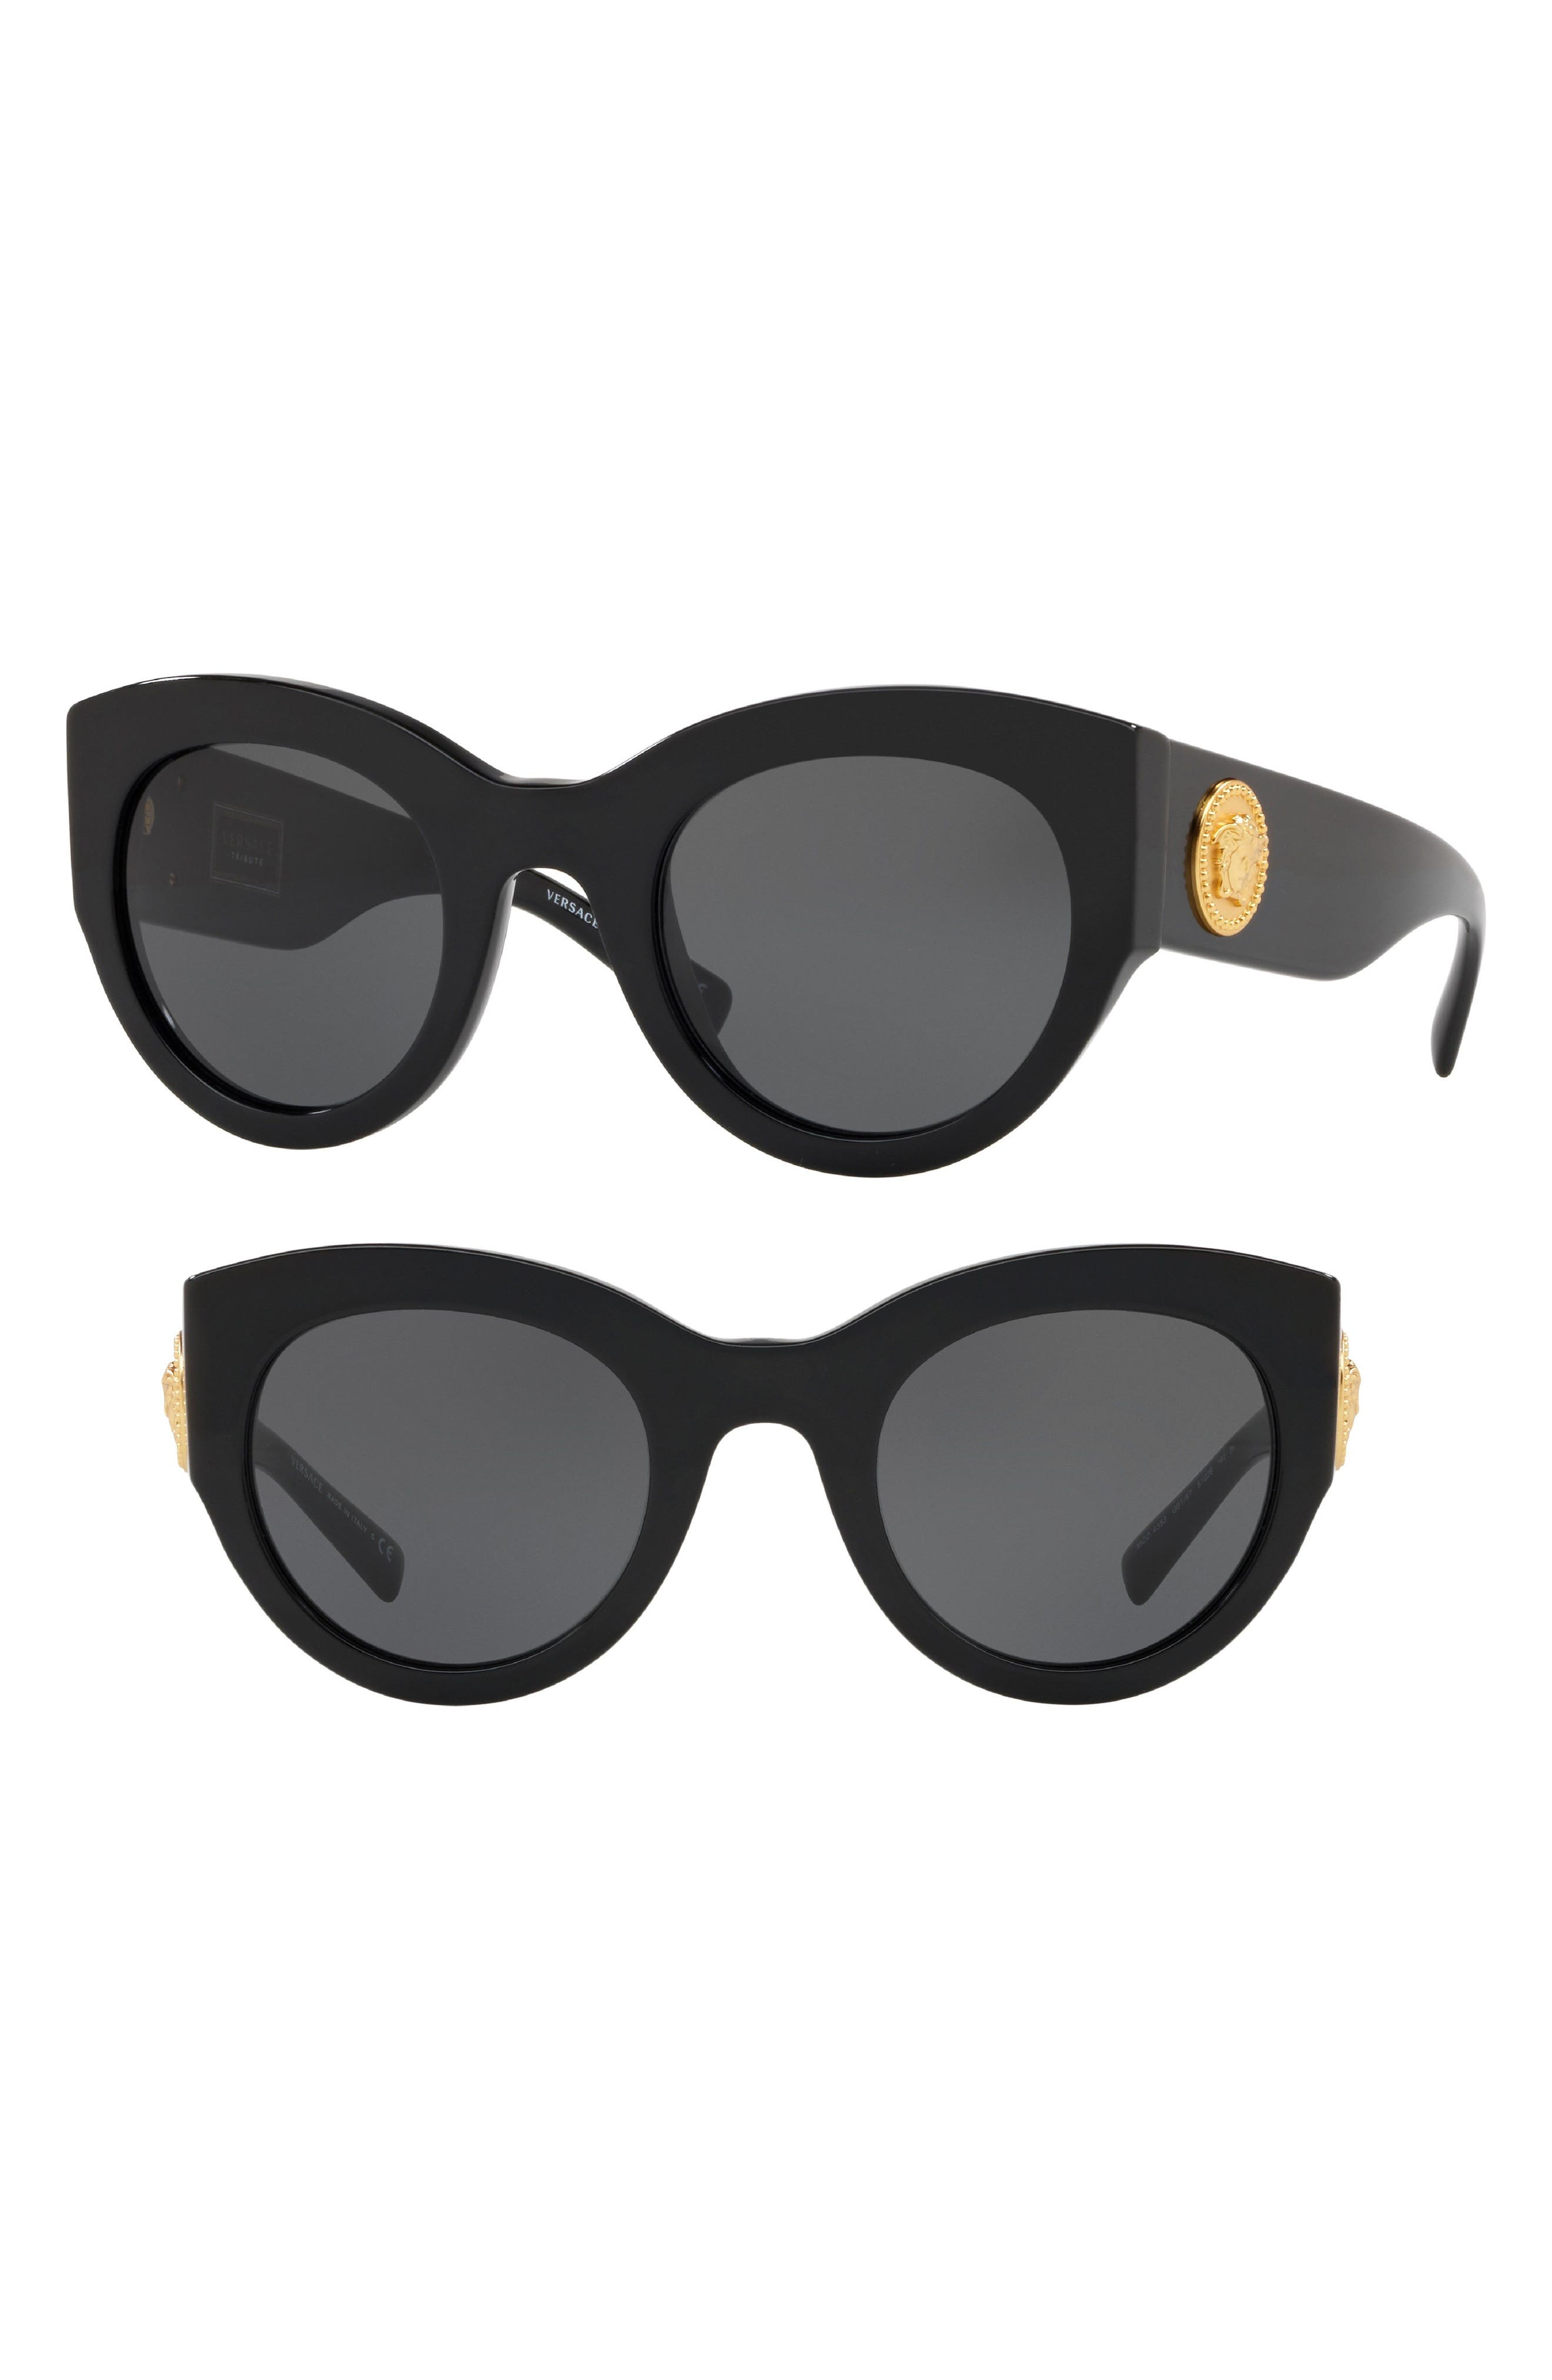 Tribute 51mm Cat Eye Sunglasses,                             Main thumbnail 1, color,                             BLACK SOLID